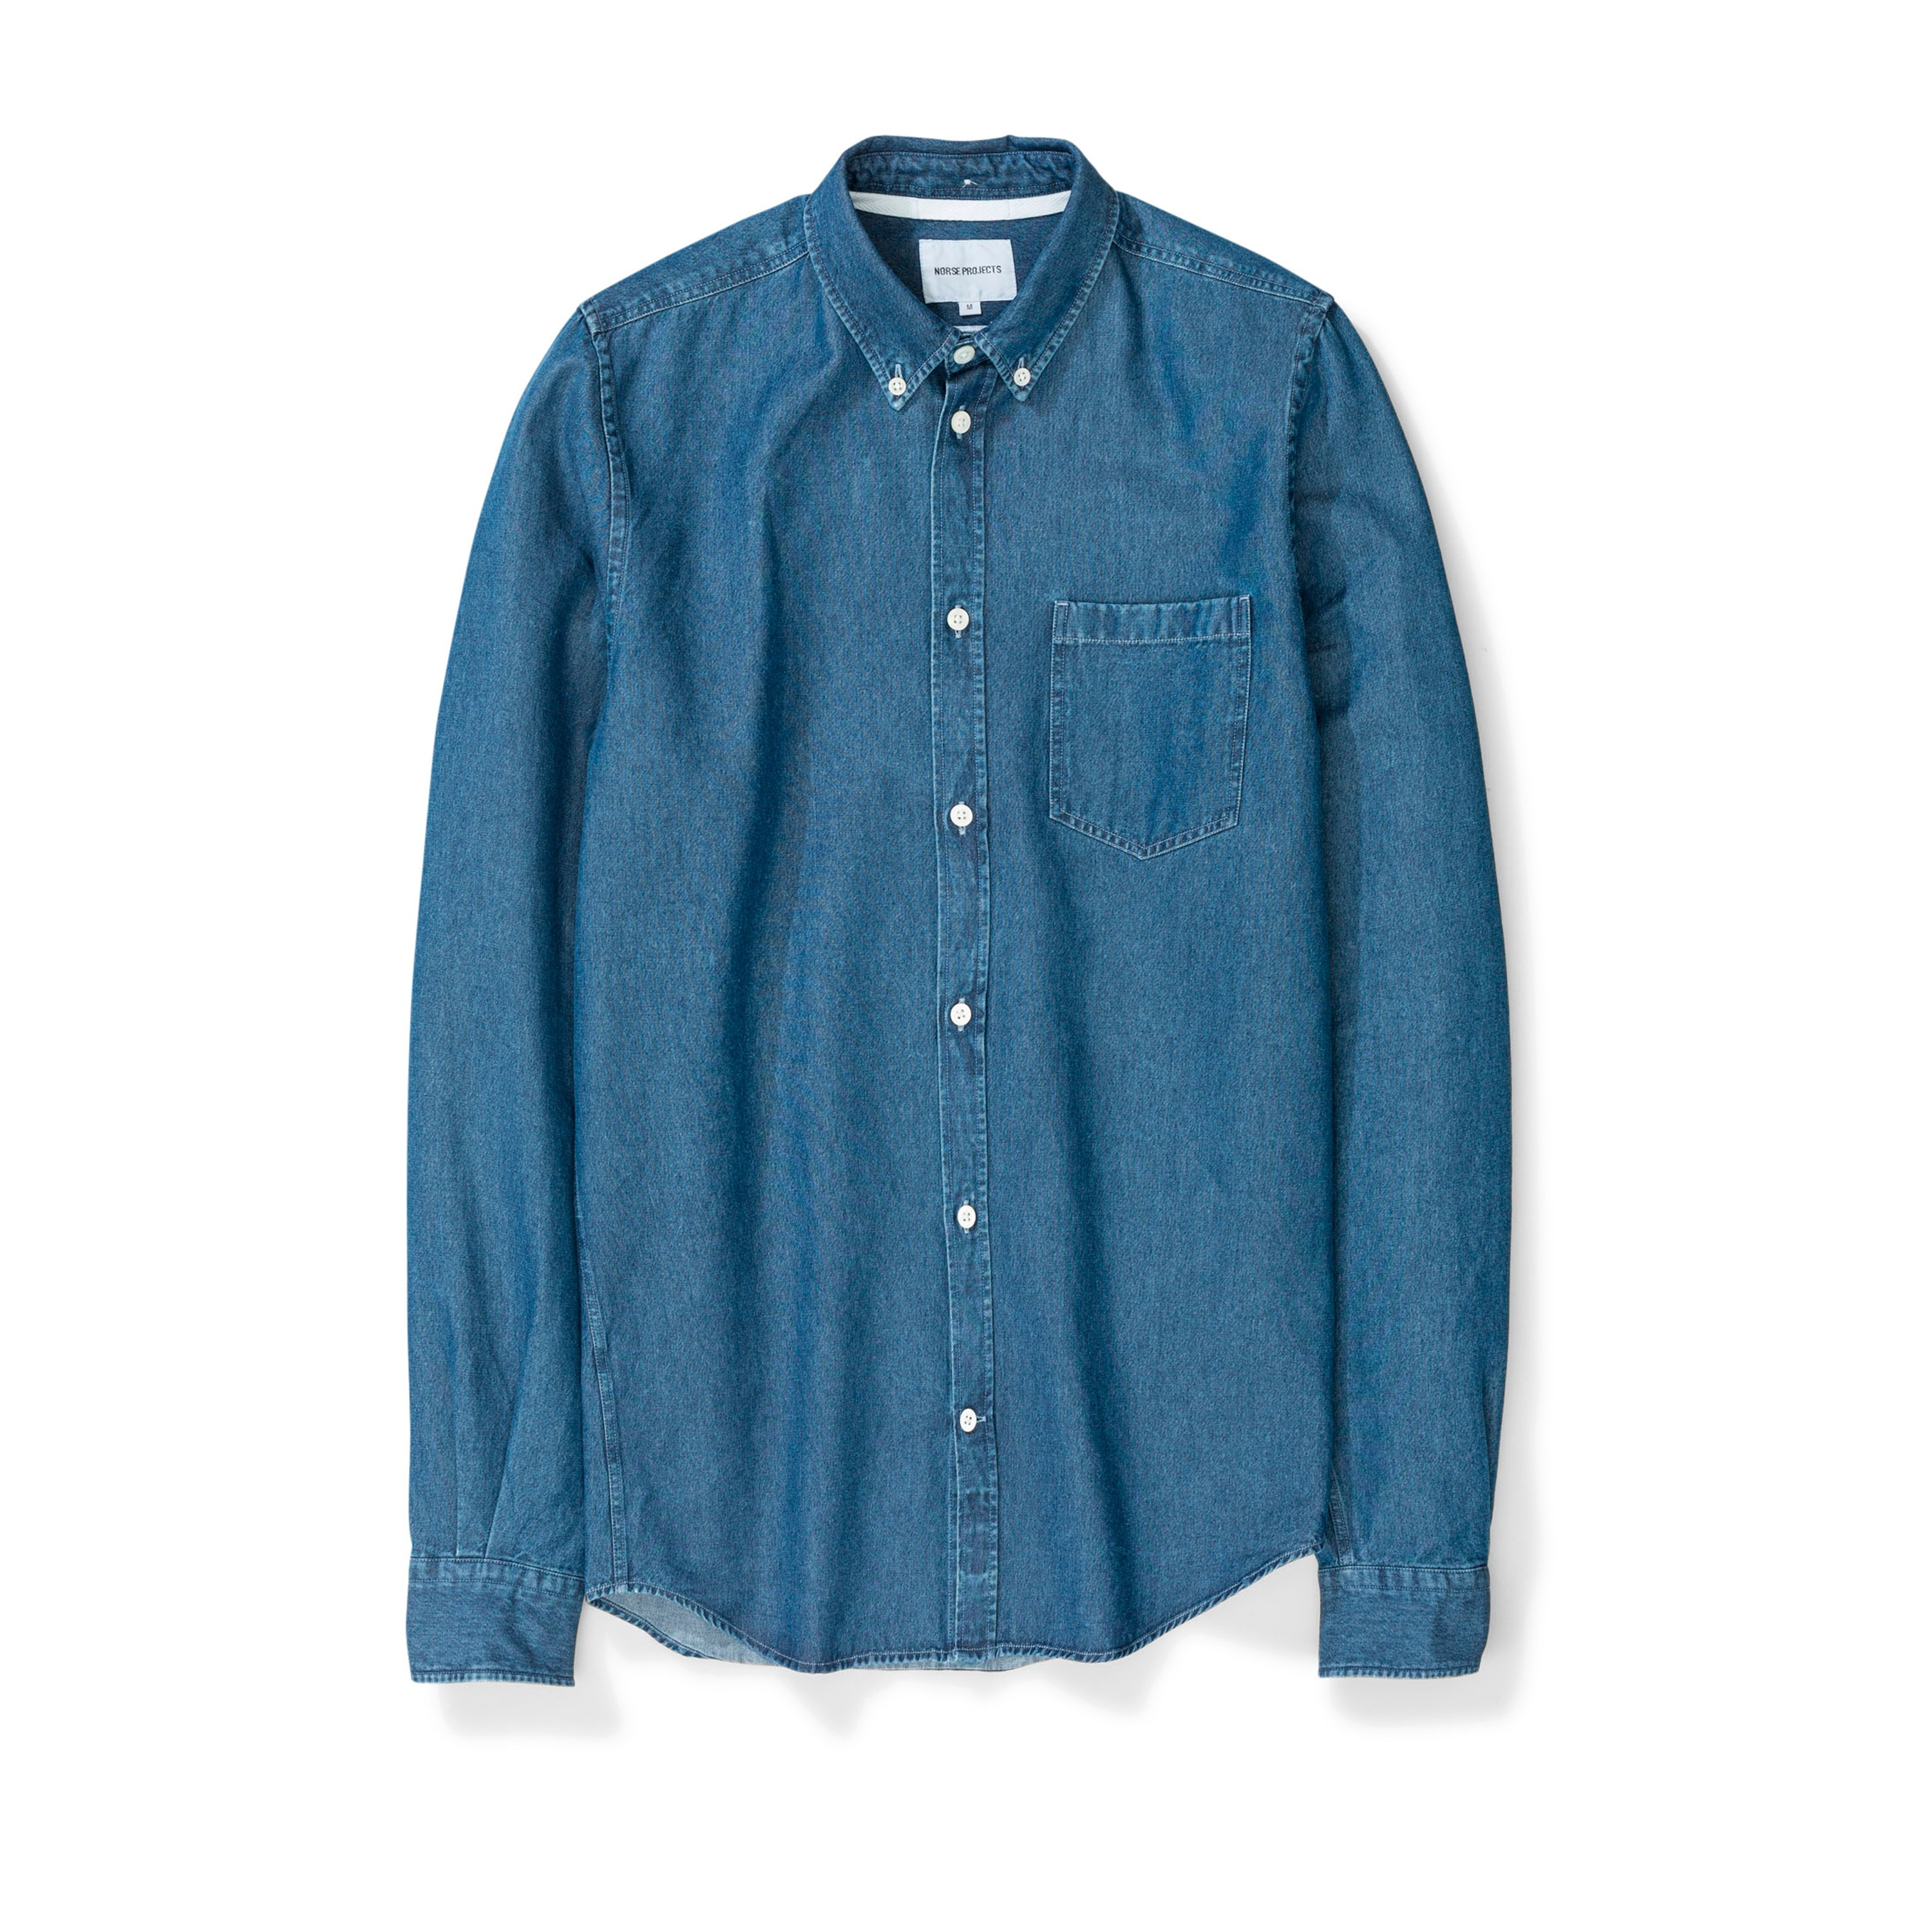 b73bf5a259a Norse Projects Anton Denim Shirt (Sunwashed) - N40-0459 7523 ...